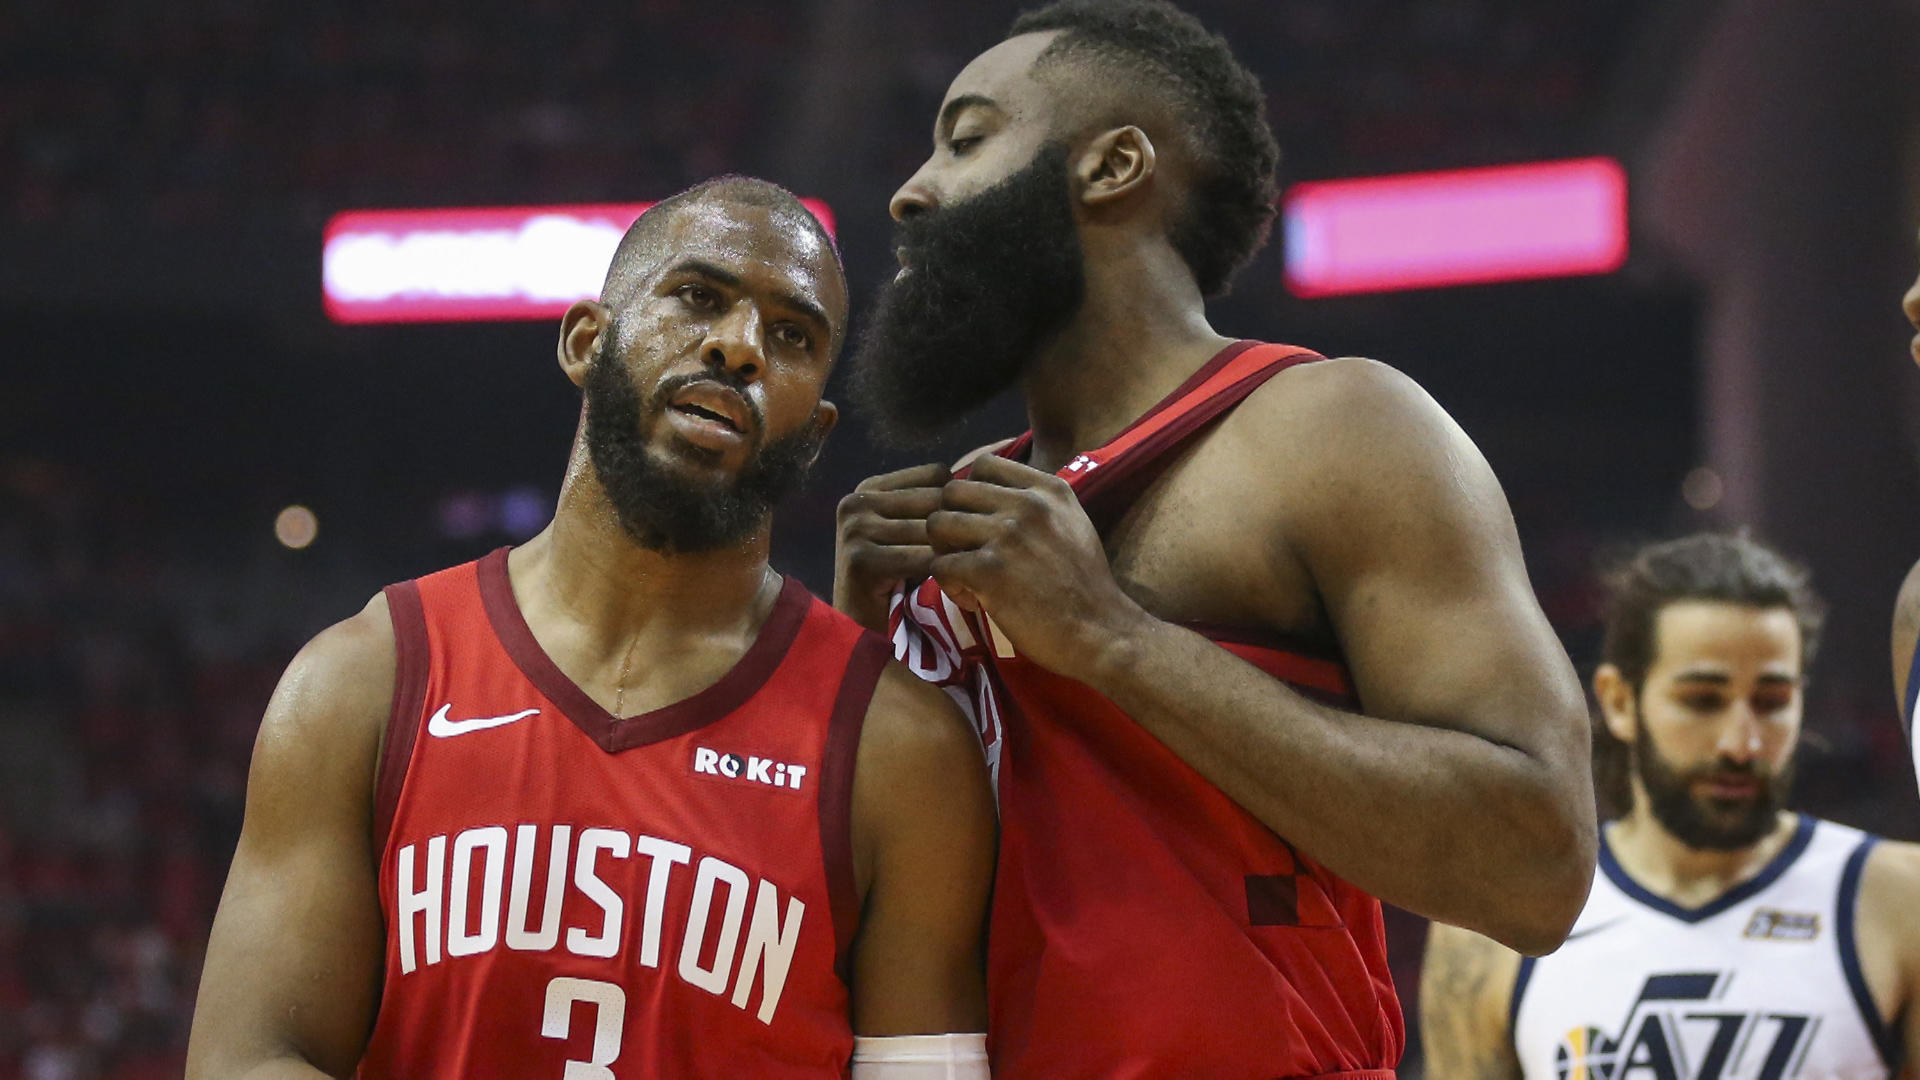 NBA Playoffs 2019: Rockets vs. Jazz Game 2 score, series schedule, results, TV channel, online stream, odds, matchups